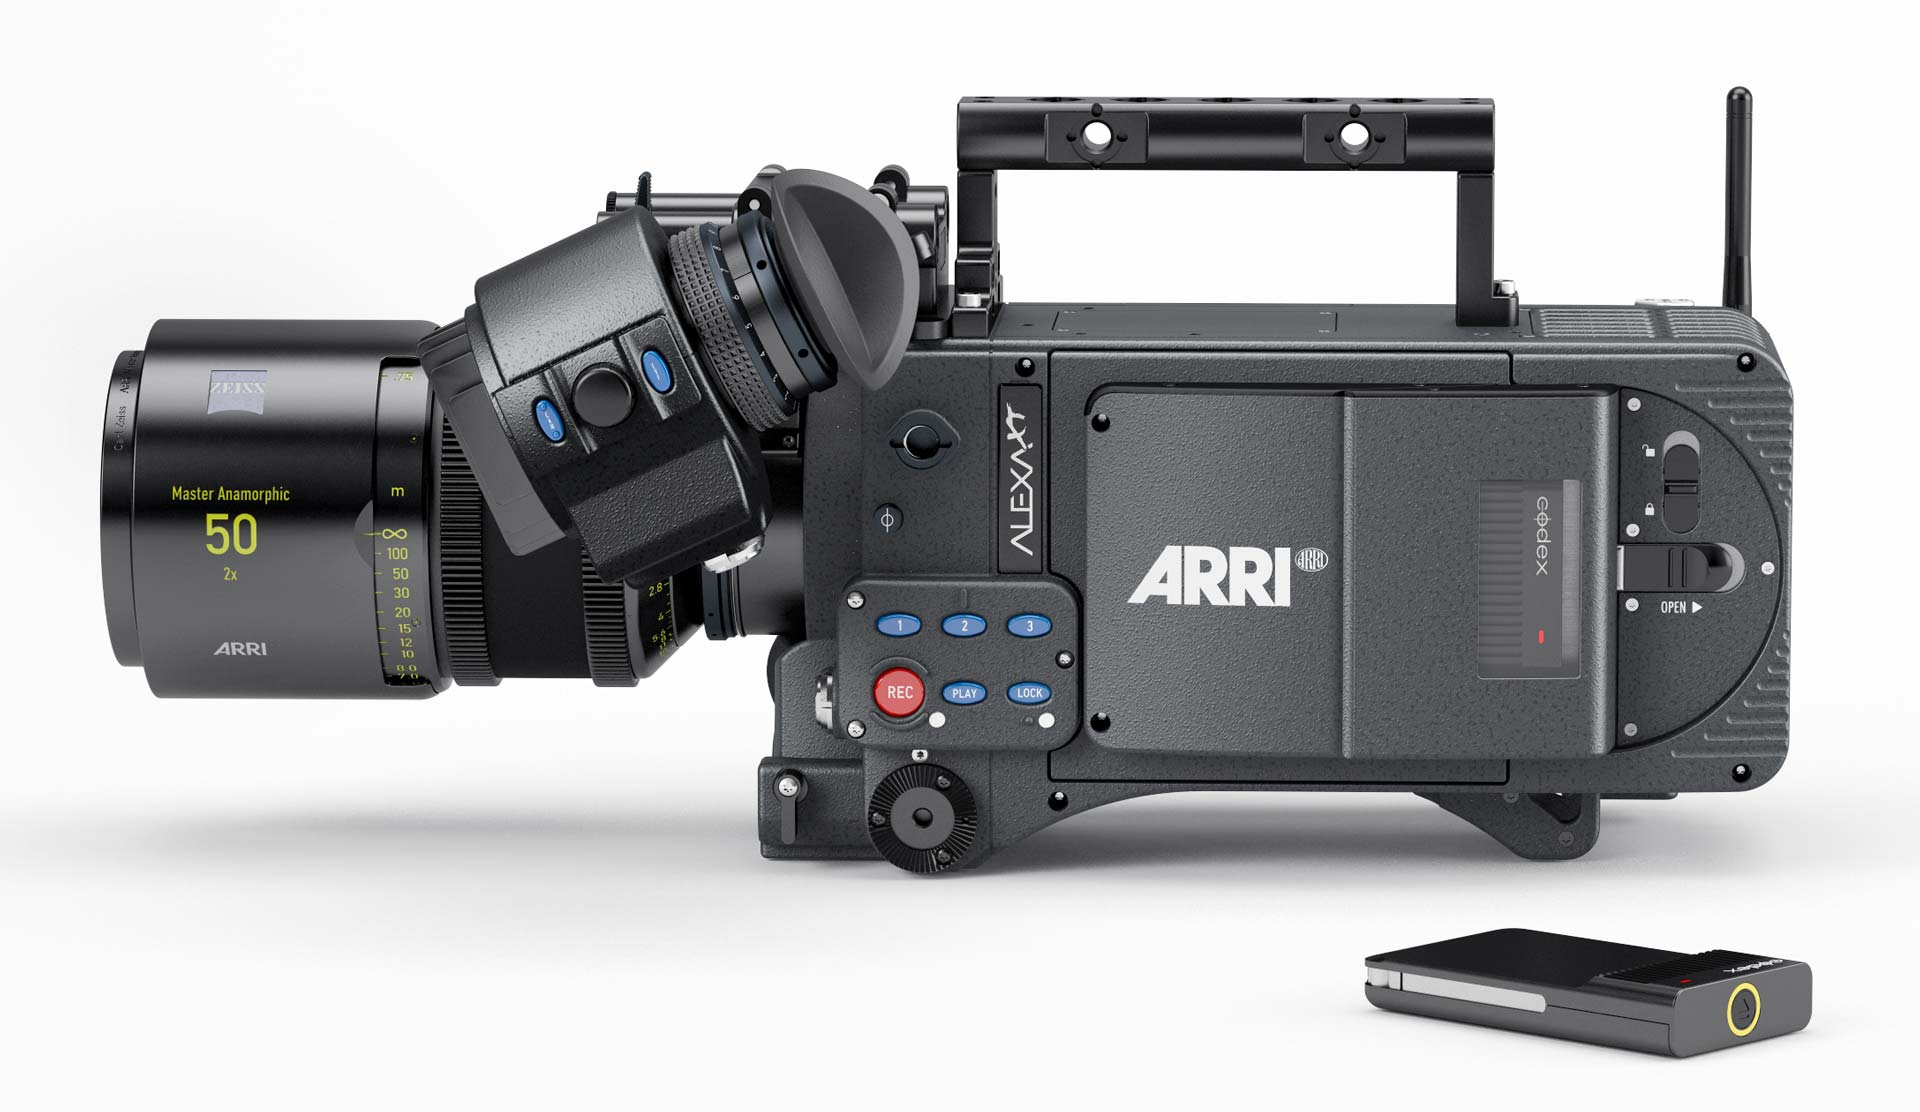 Arri Alexa Xr And Xt Now Support Arriraw Uncompressed Recording Lee Filters Double Slotted Lens Hood